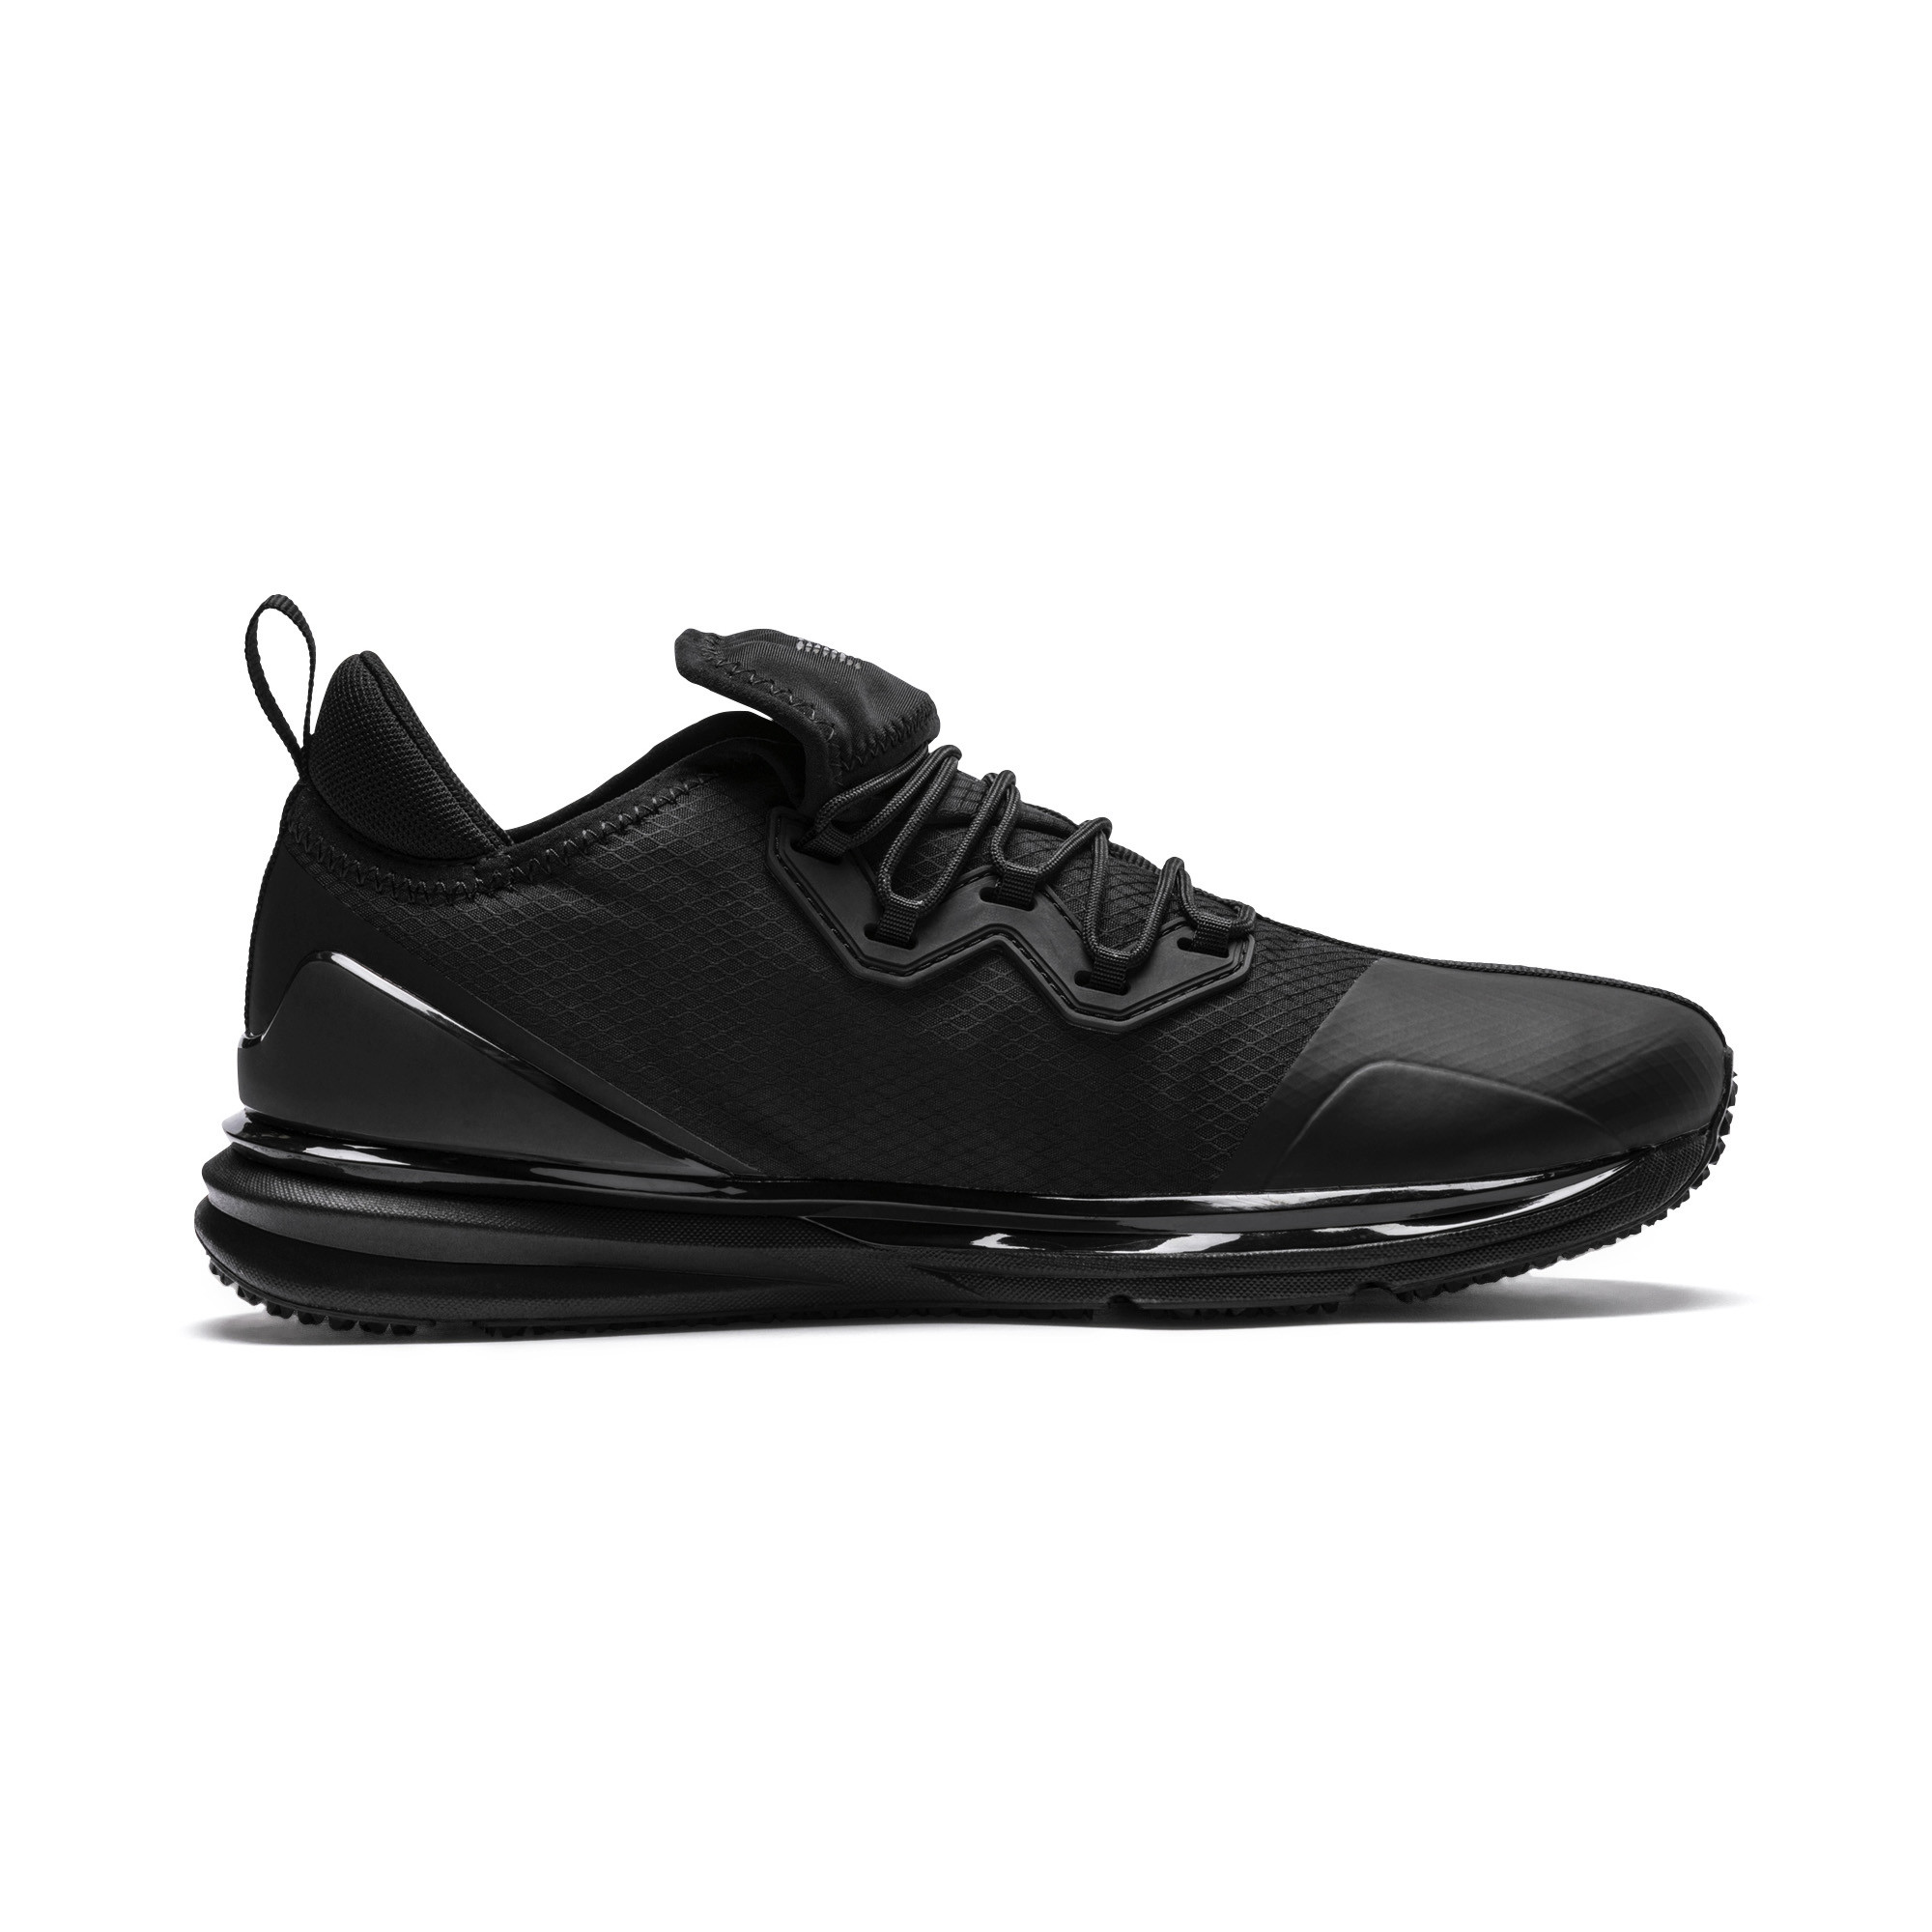 100% authentic ee0bb d3ca7 Details about PUMA IGNITE Limitless Initiate Running Shoes Men Shoe Running